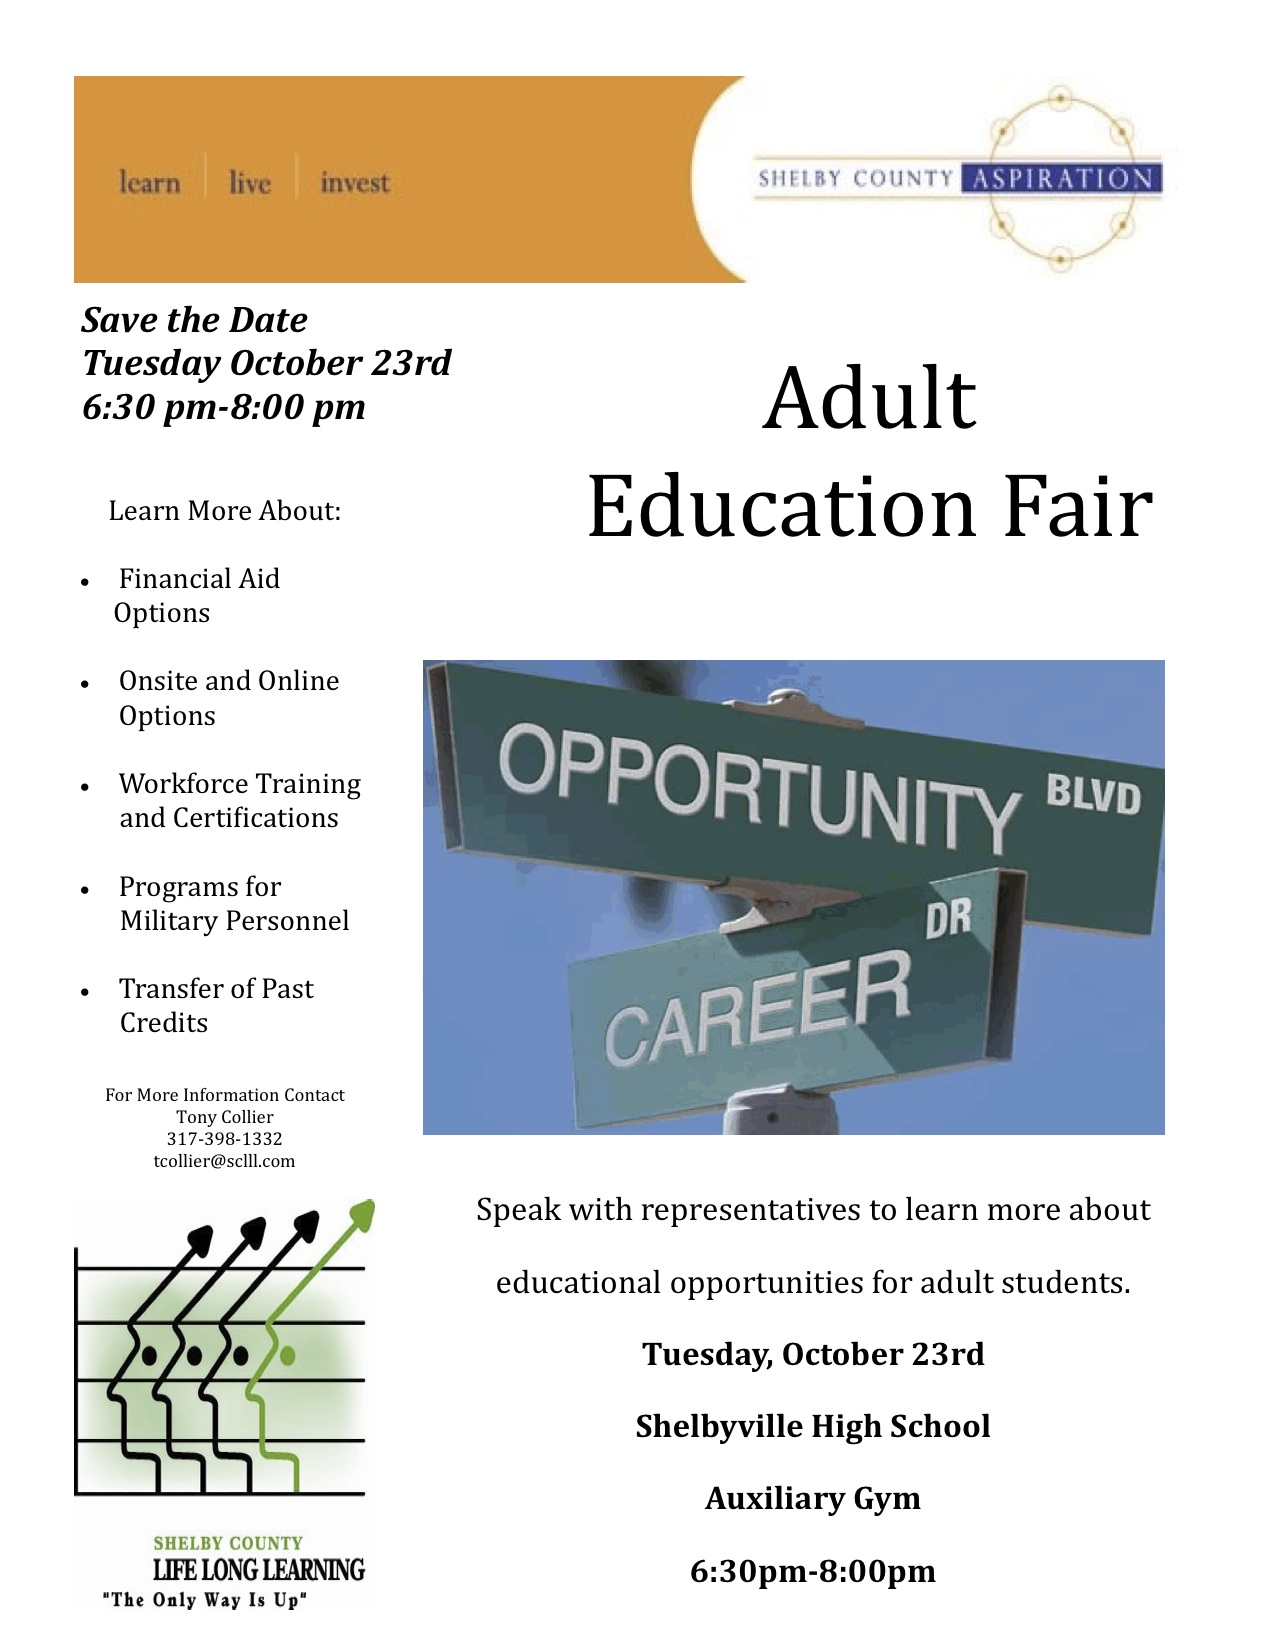 Adult Education Fair 2012